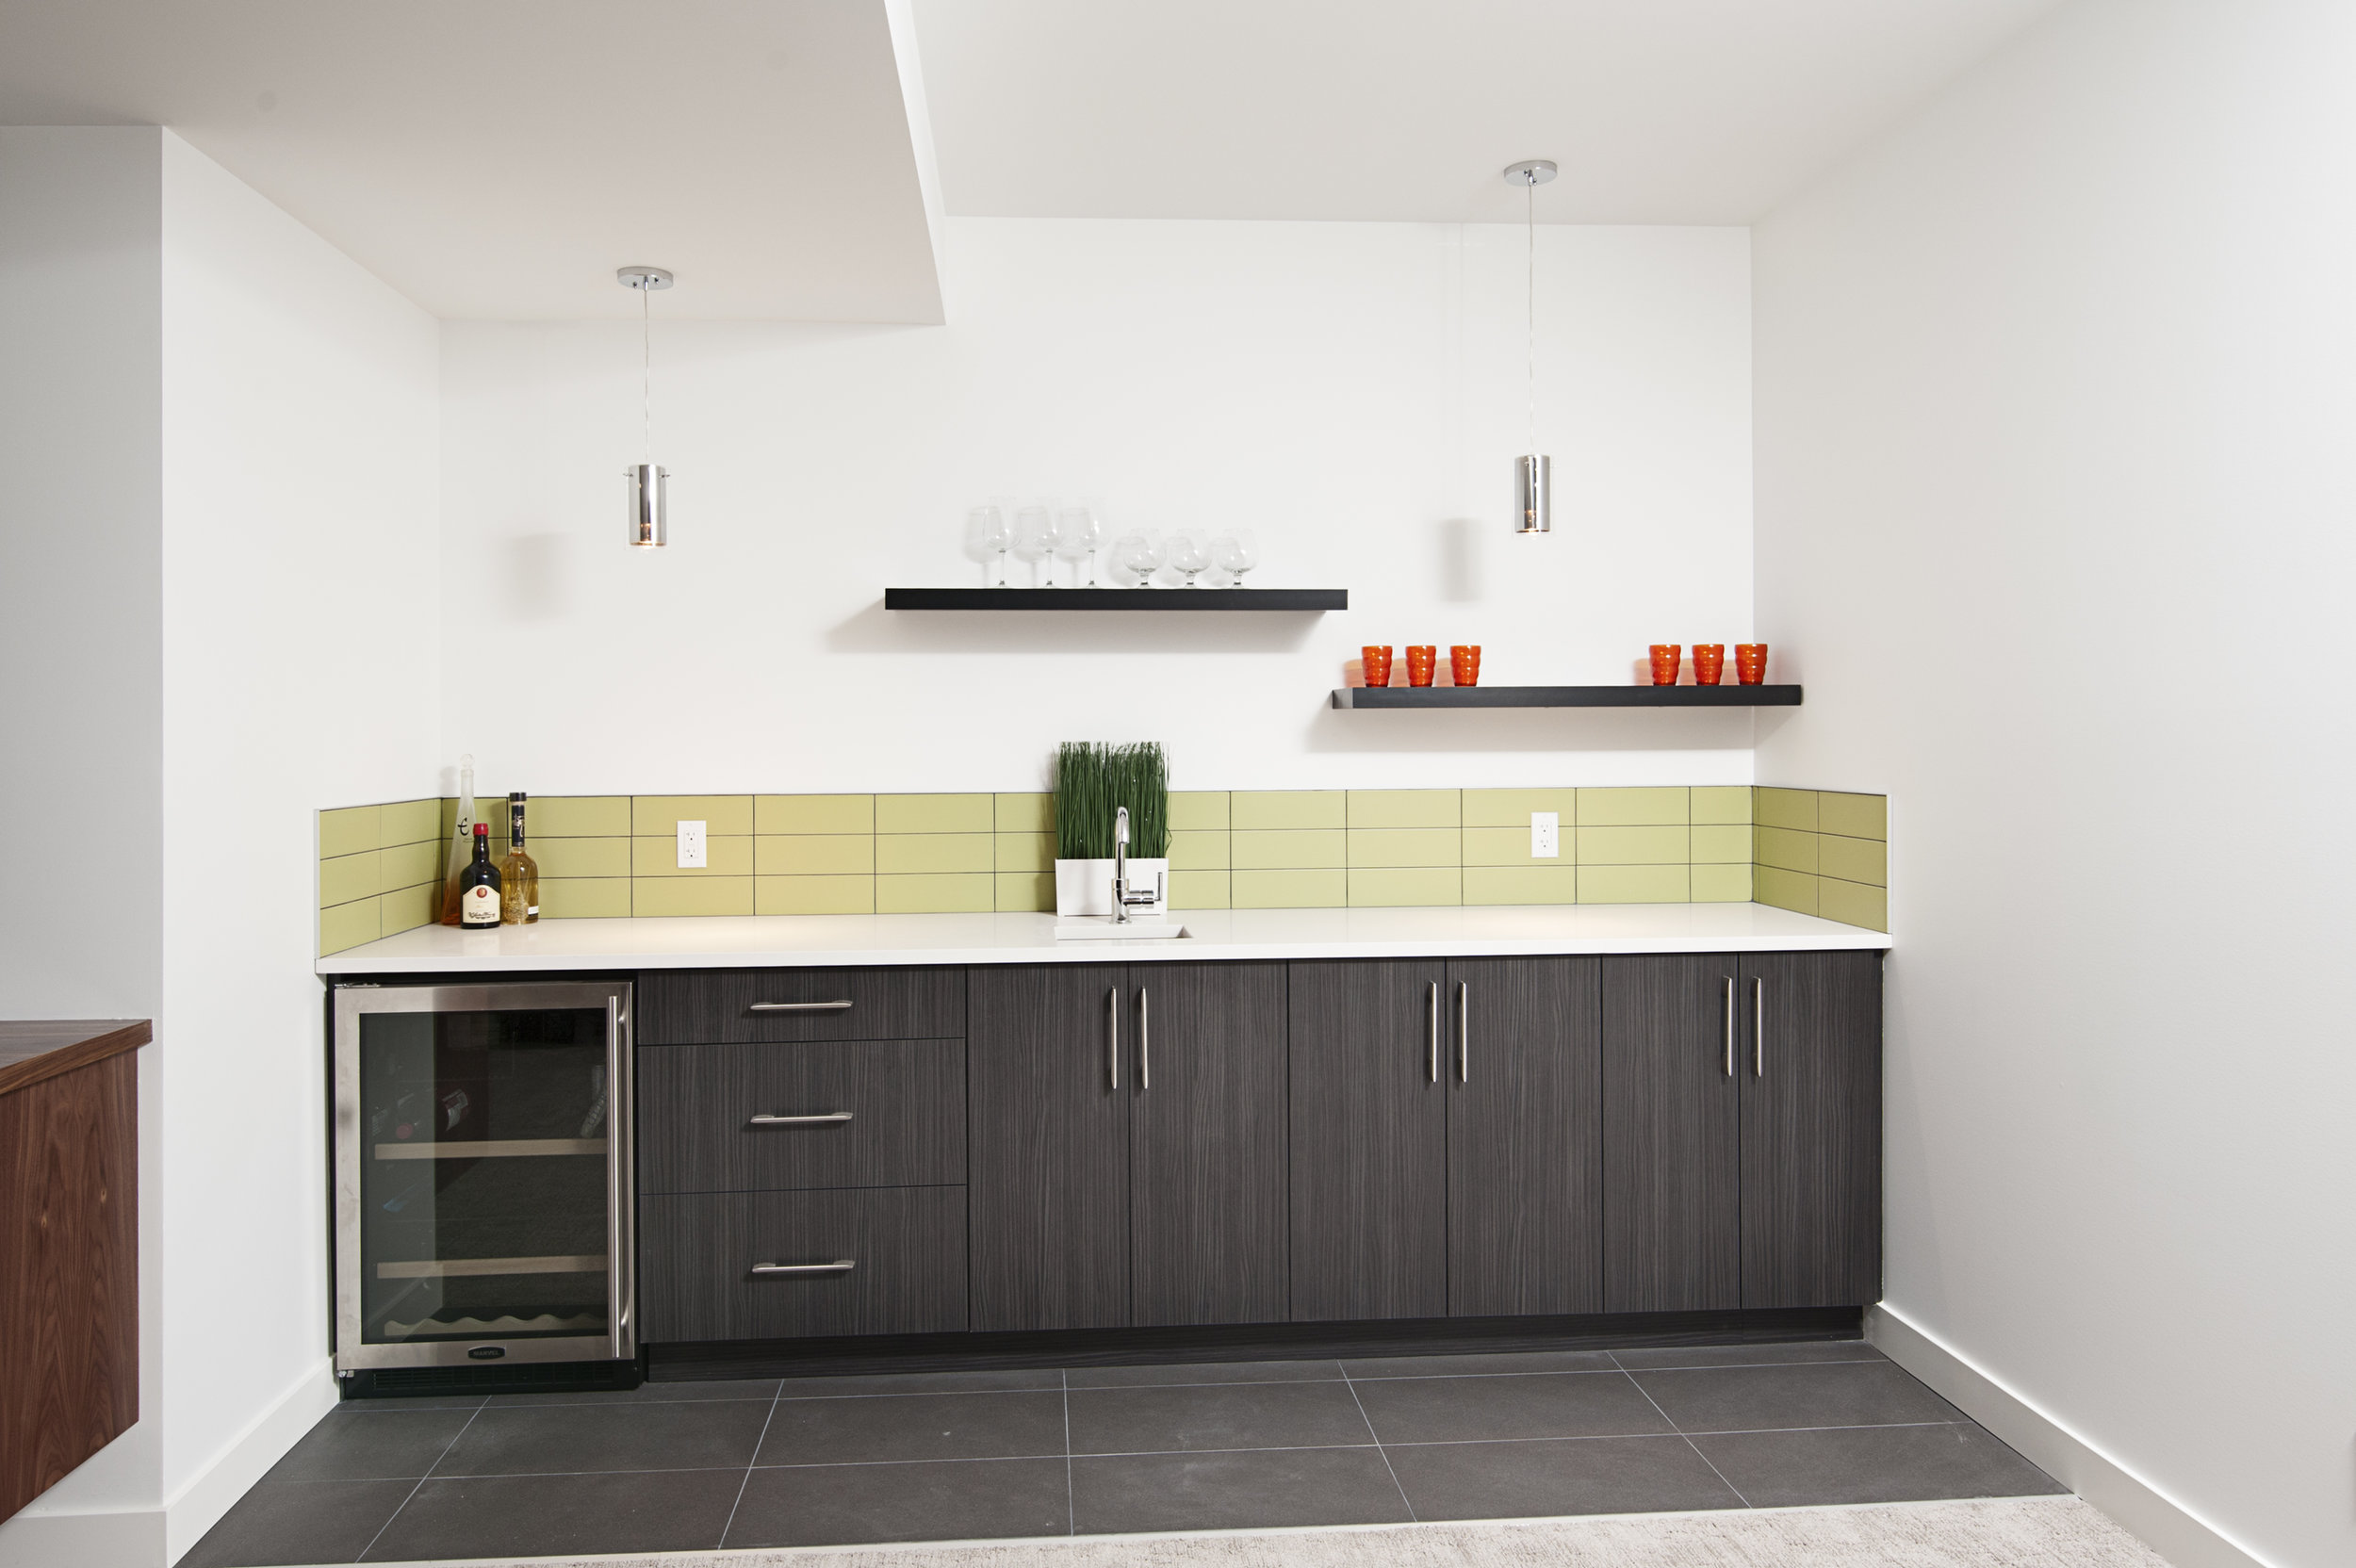 EVEN A SMALL SPACE CAN do it all with efficient cabinet storage and counter space. HERE, CONTRASTING MATERIALS AND CLEAN CABINETS GIVE A MODEST KITCHEN MAJOR POTENTIAL.